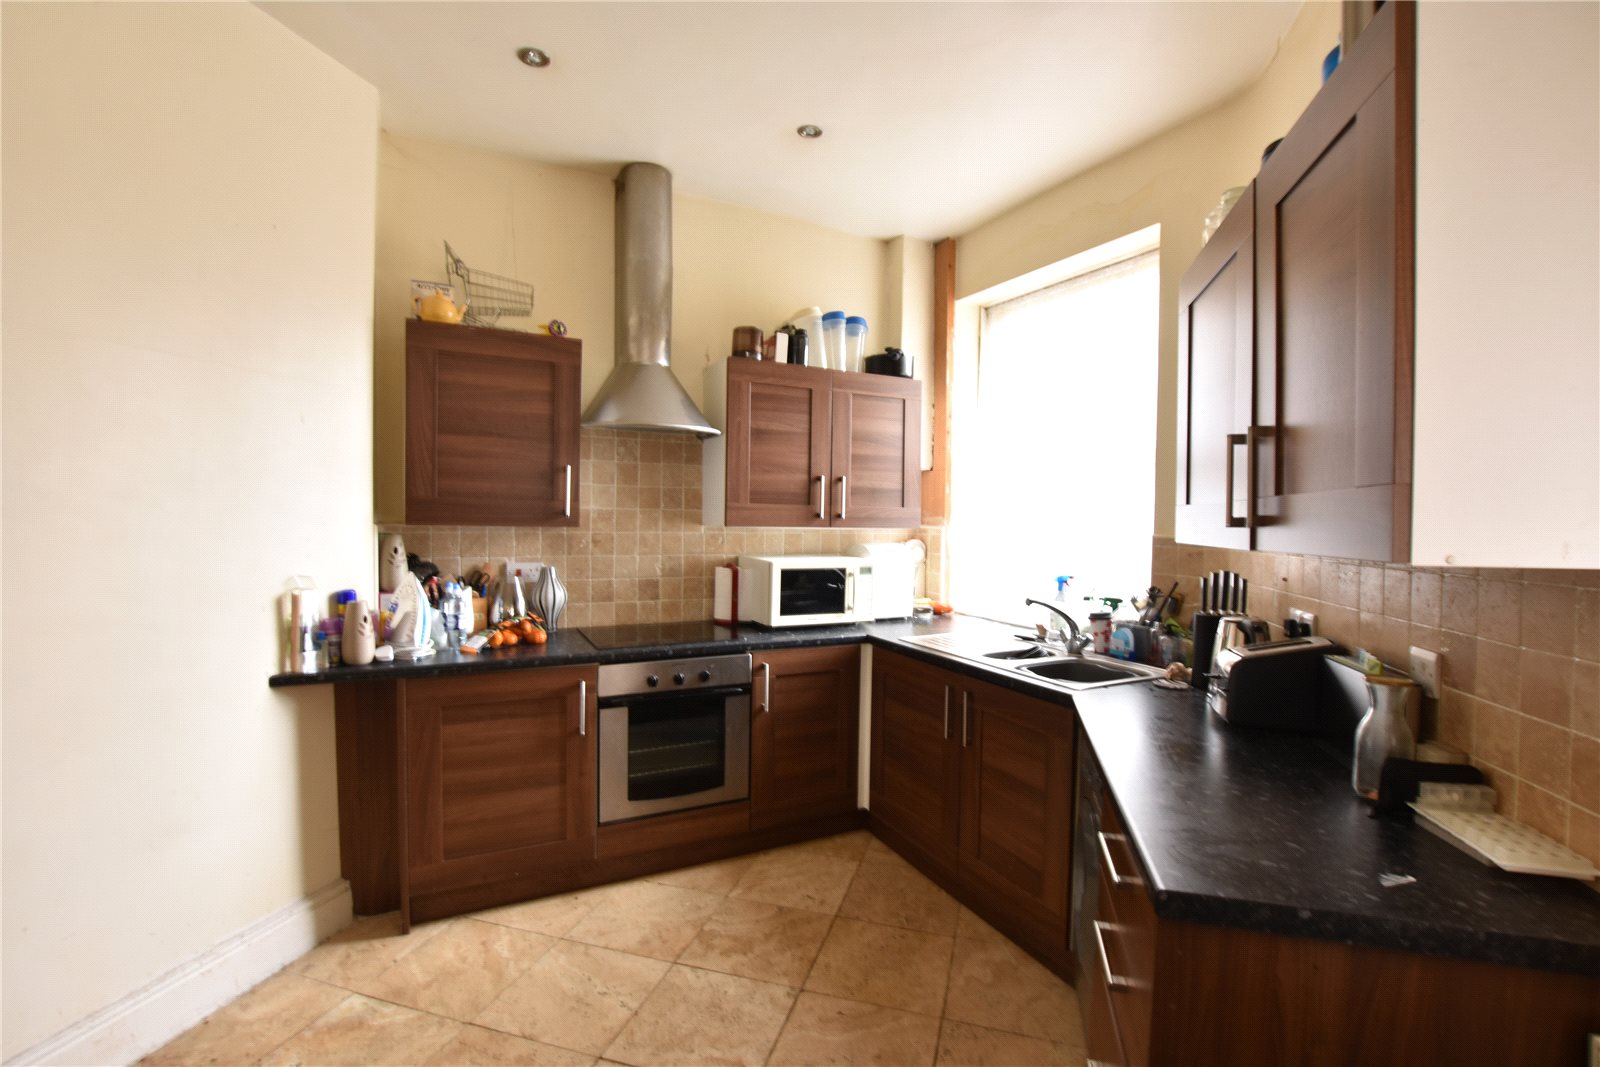 Property for sale in Morley, kitchen area, dark wood cabinets and oven